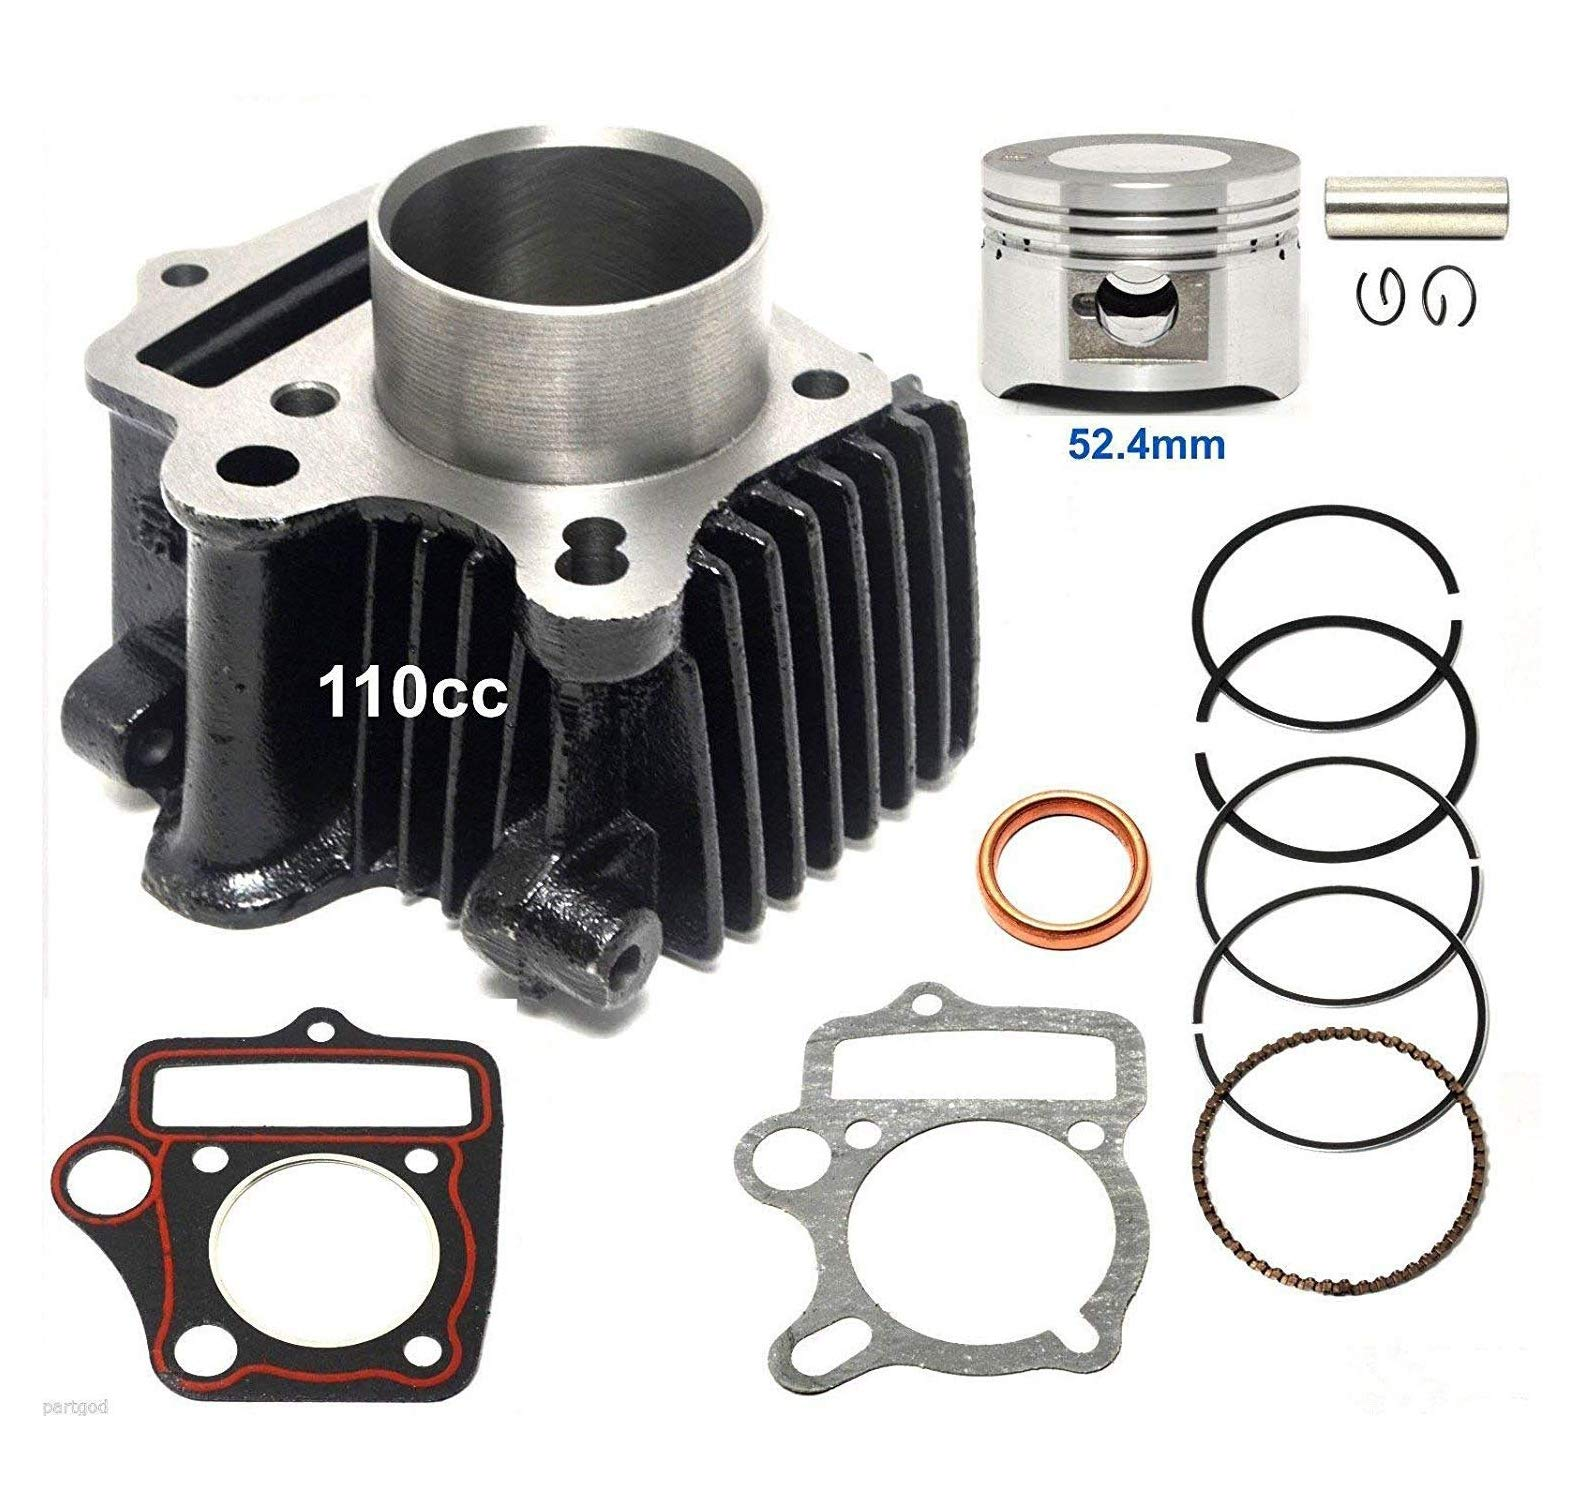 110cc Cylinder kit Piston Rings set compatible with TaoTao: BoulderB1, ATA 110 D/D1, ATA 125 D, ATA 125 F1, DB 14, DB 10, ATK 125 A, Jeep Auto, ATA 110 B/B1, ATA 135 DU, and NEW TFORCE by WhatApart